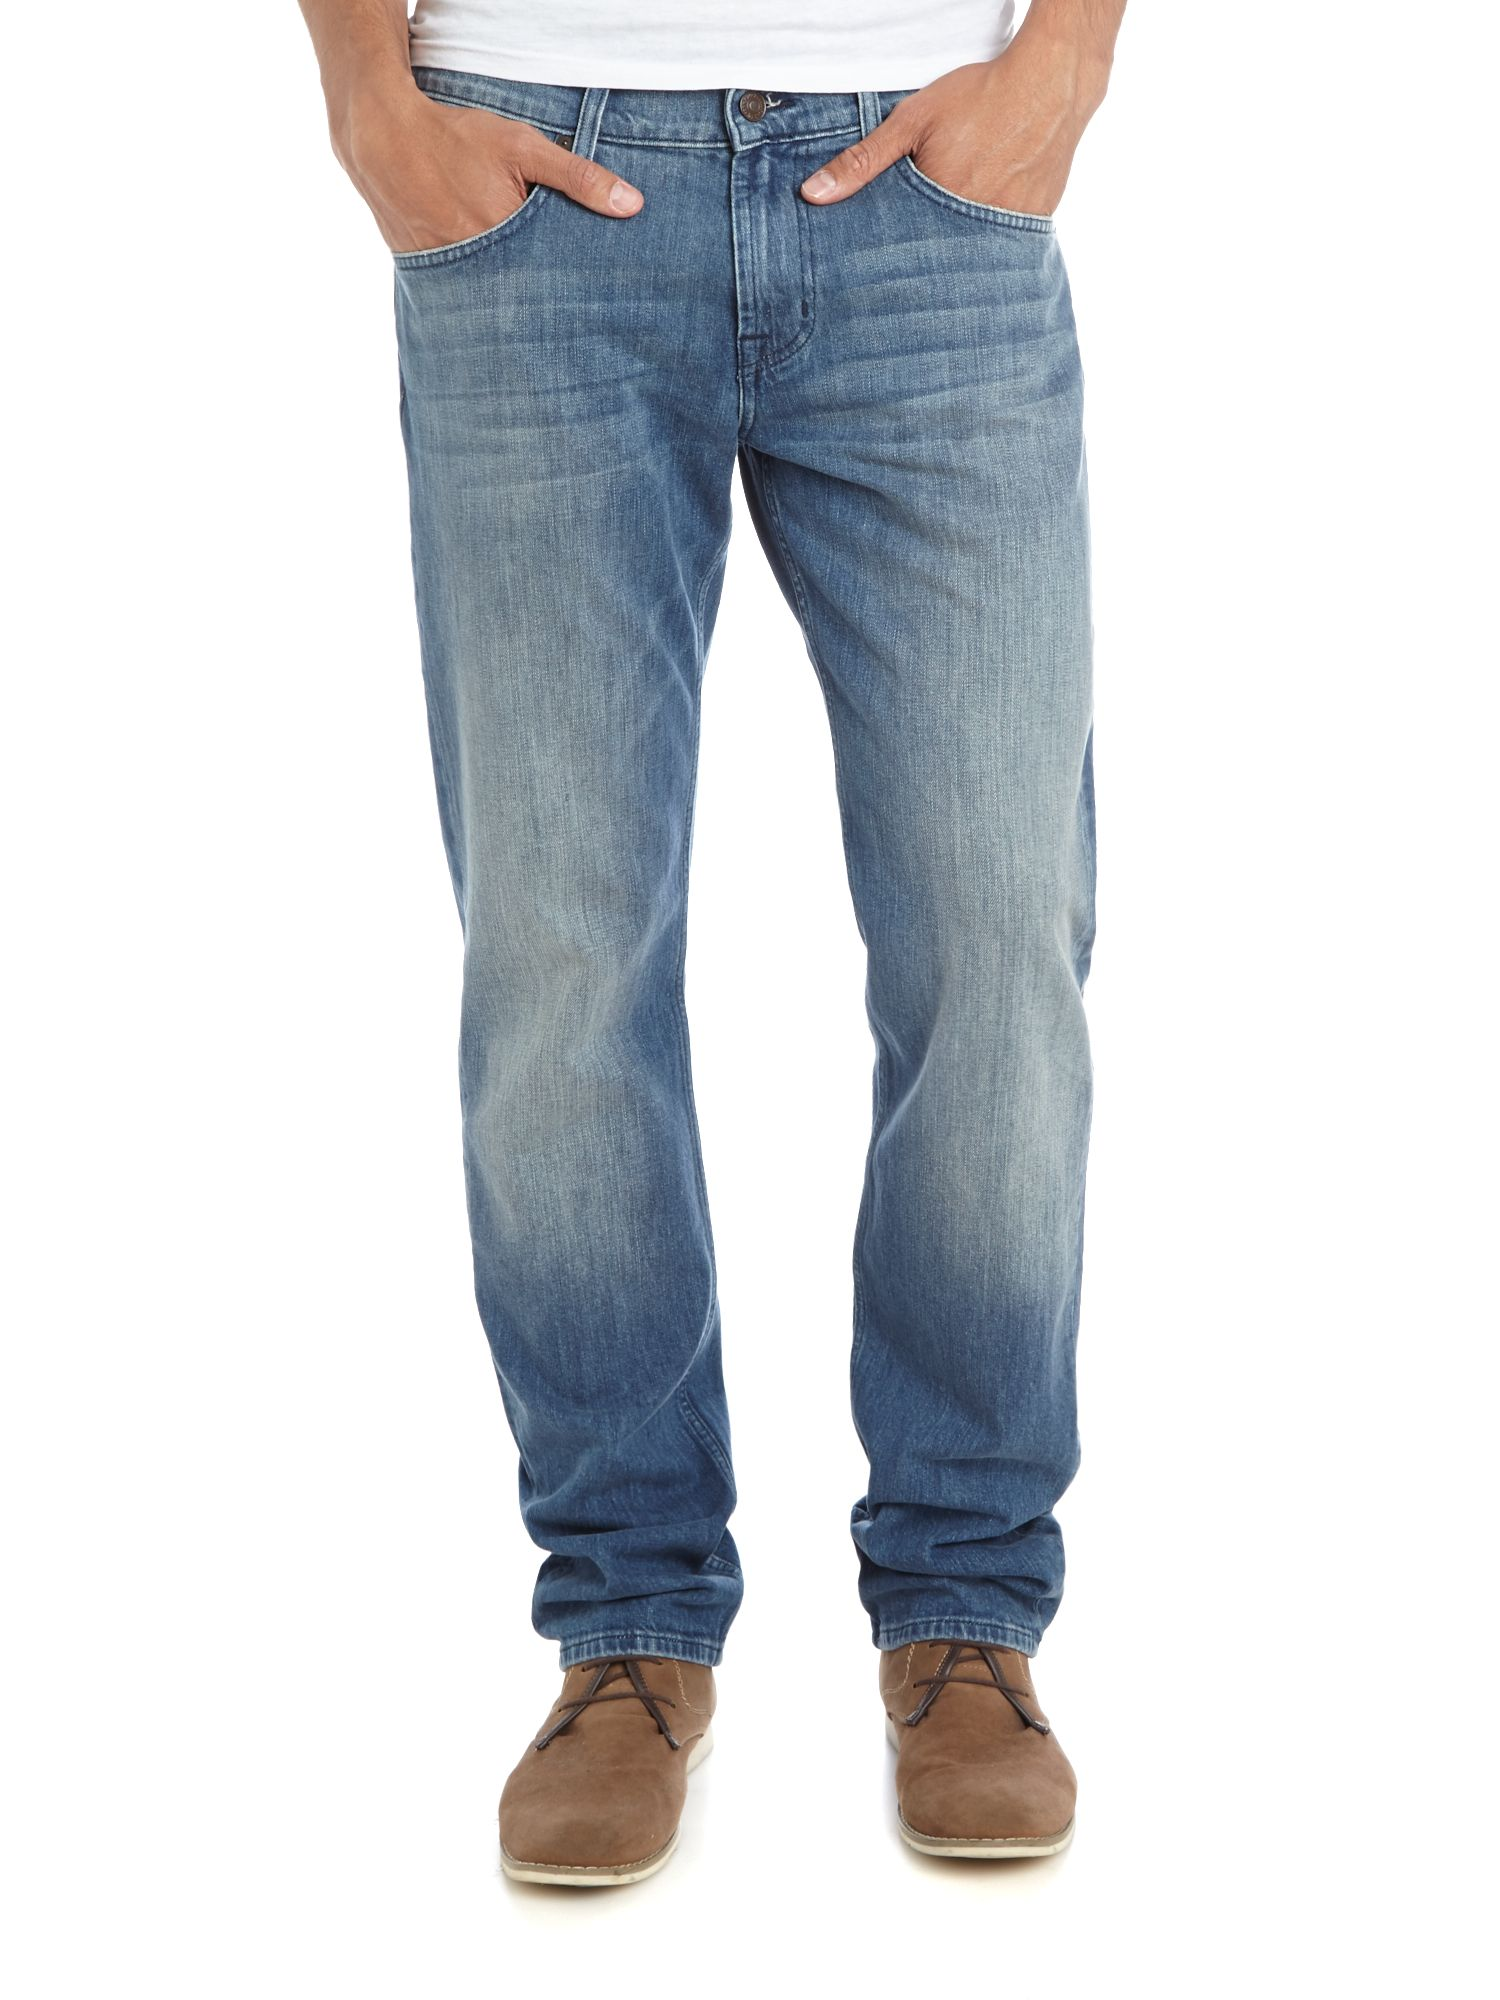 Straight pasadena light wash jean